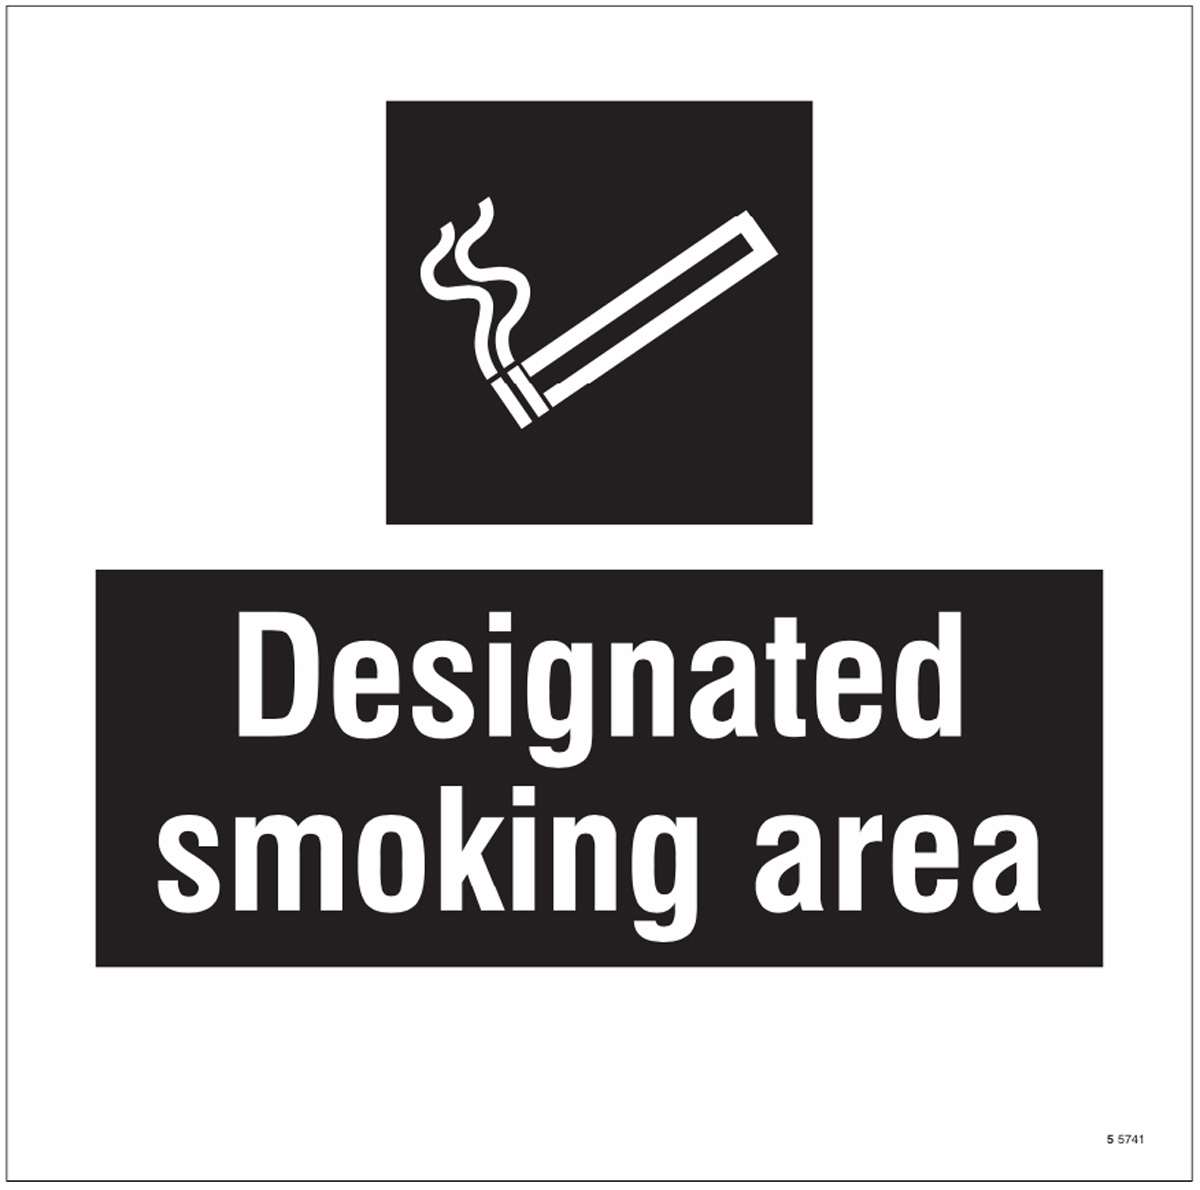 Designated smoking area, site saver sign 400x400mm